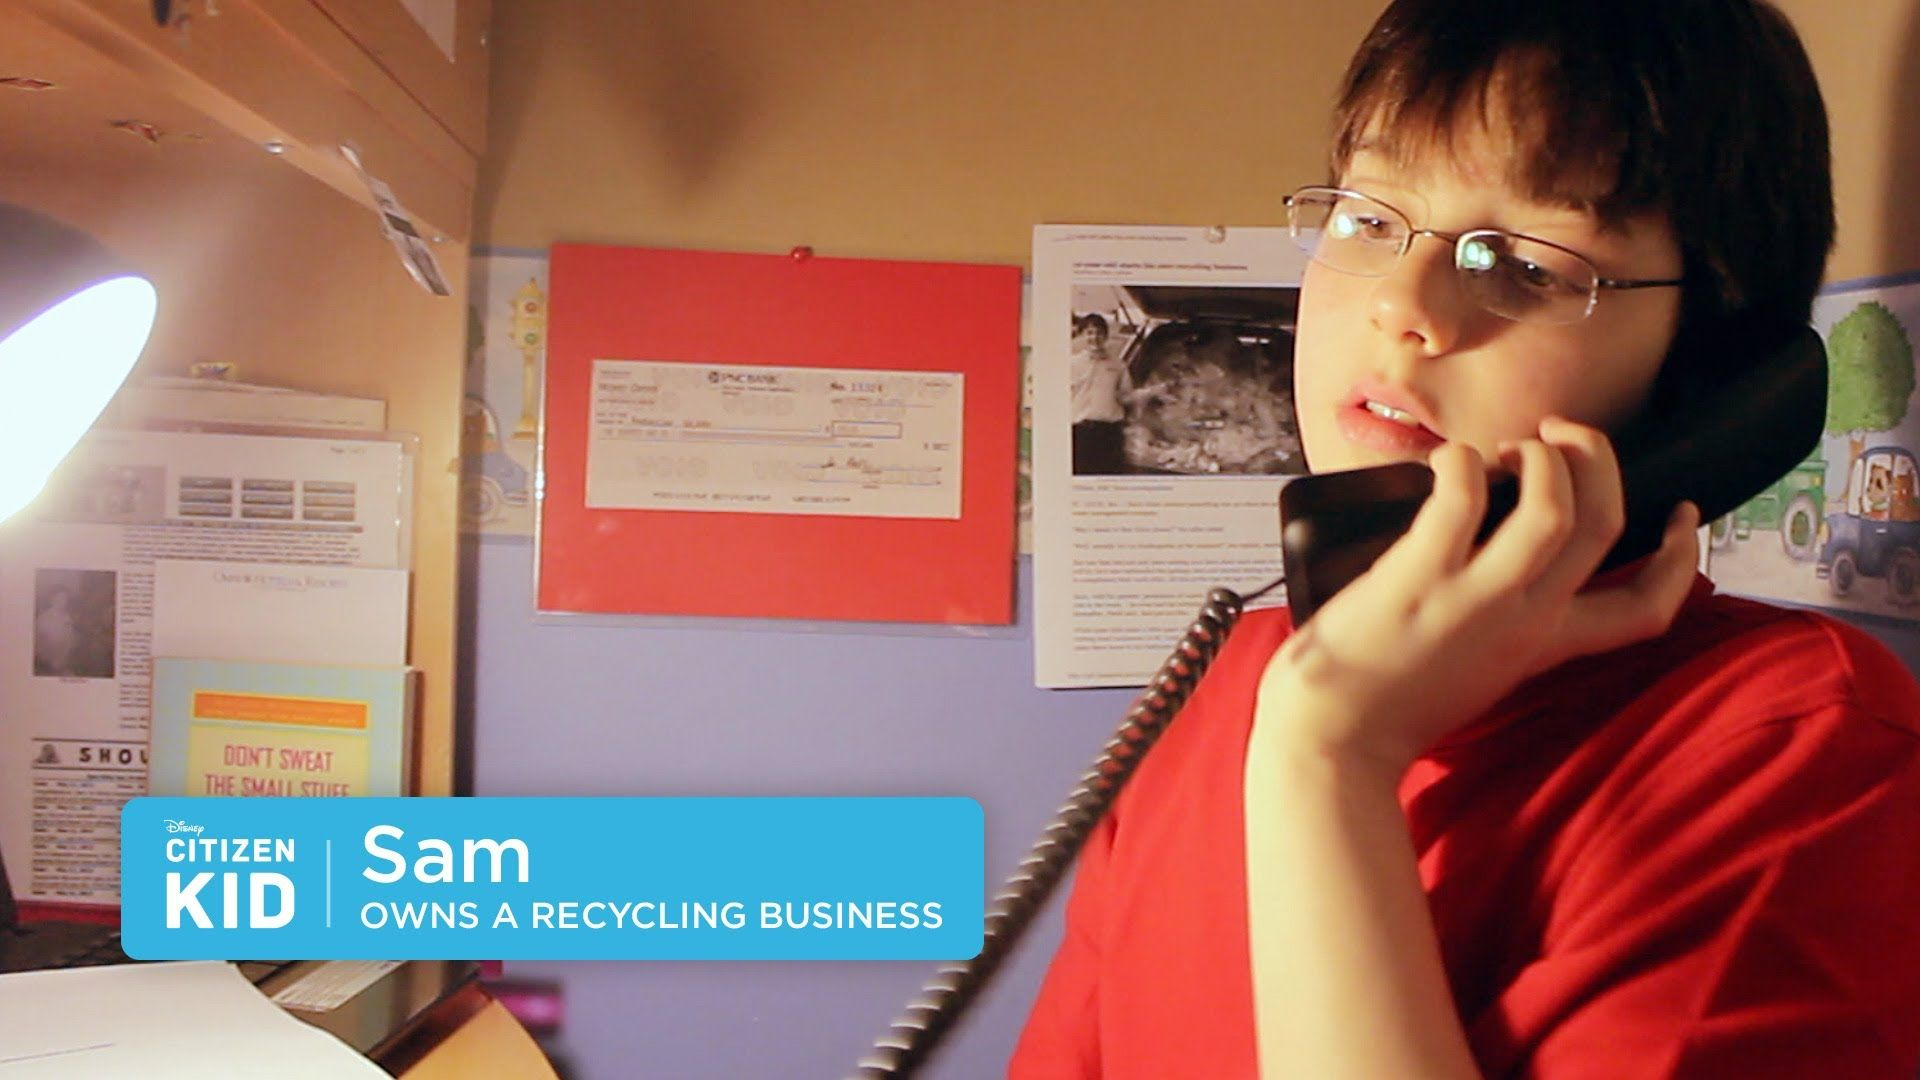 Meet Citizenkid Sam A Young Entrepreneur With A Passion For Saving The Planet